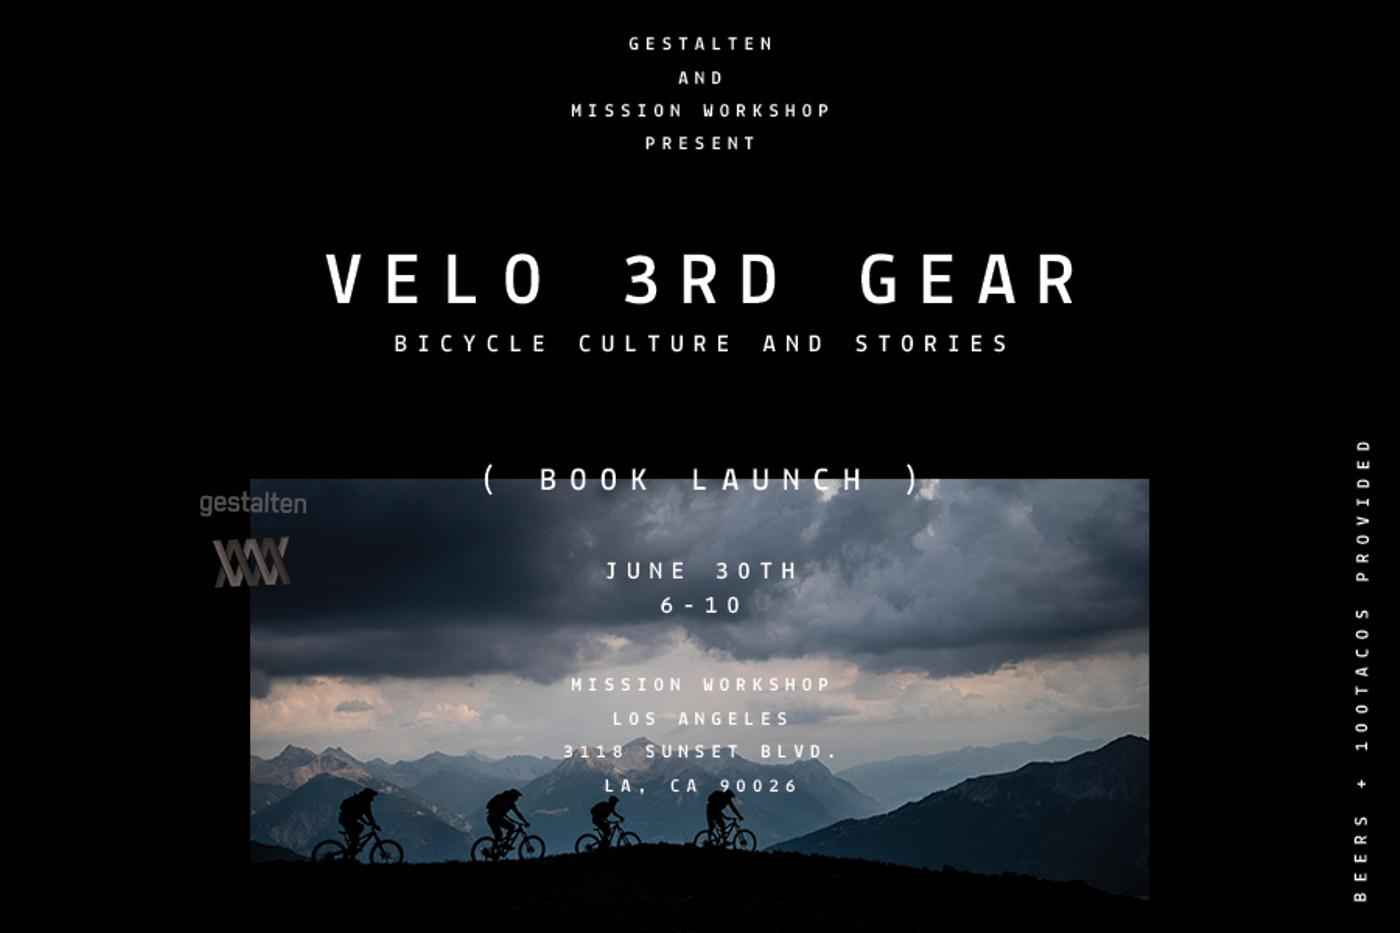 Velo 3rd Gear Book Launch at Mission Workshop LA Thursday